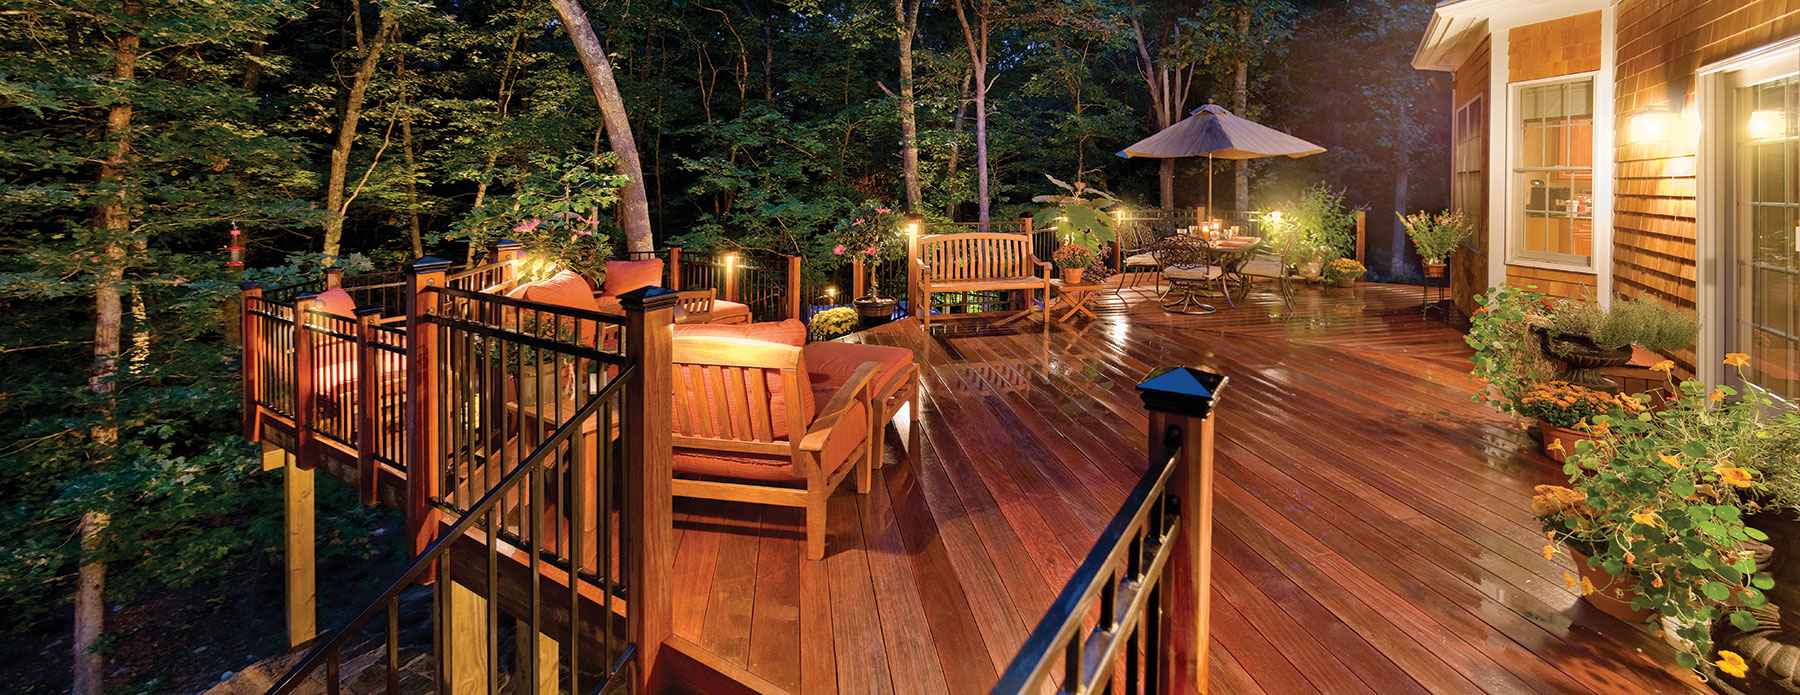 Seattle Deck Lighting Custom Deck And Patio ...